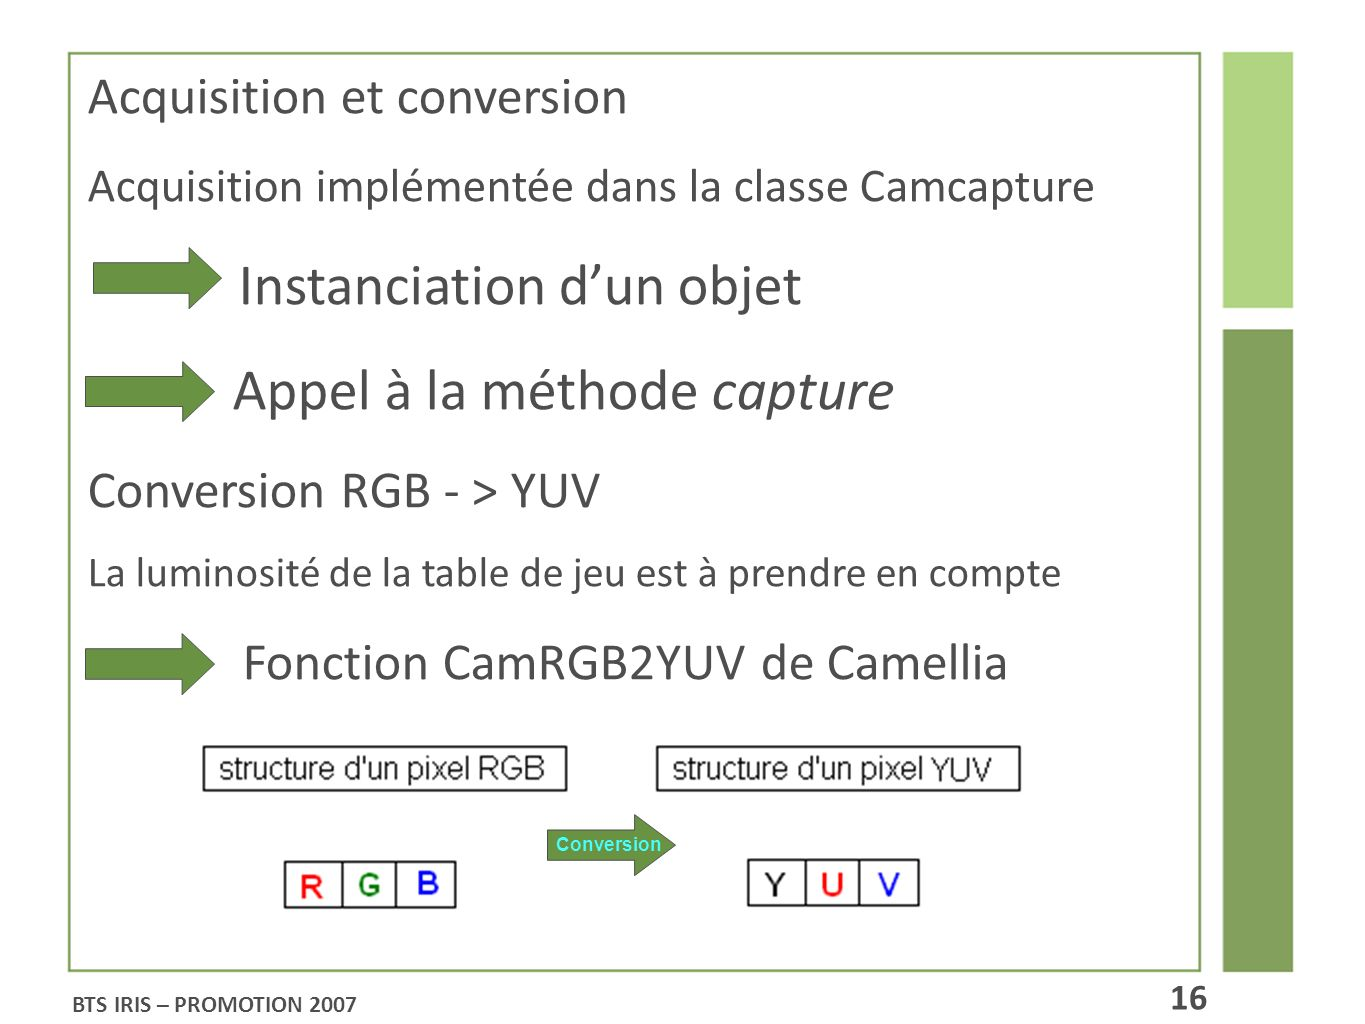 Acquisition et conversion Acquisition implémentée dans la classe Camcapture Instanciation dun objet Appel à la méthode capture Conversion RGB - > YUV La luminosité de la table de jeu est à prendre en compte Fonction CamRGB2YUV de Camellia Conversion BTS IRIS – PROMOTION